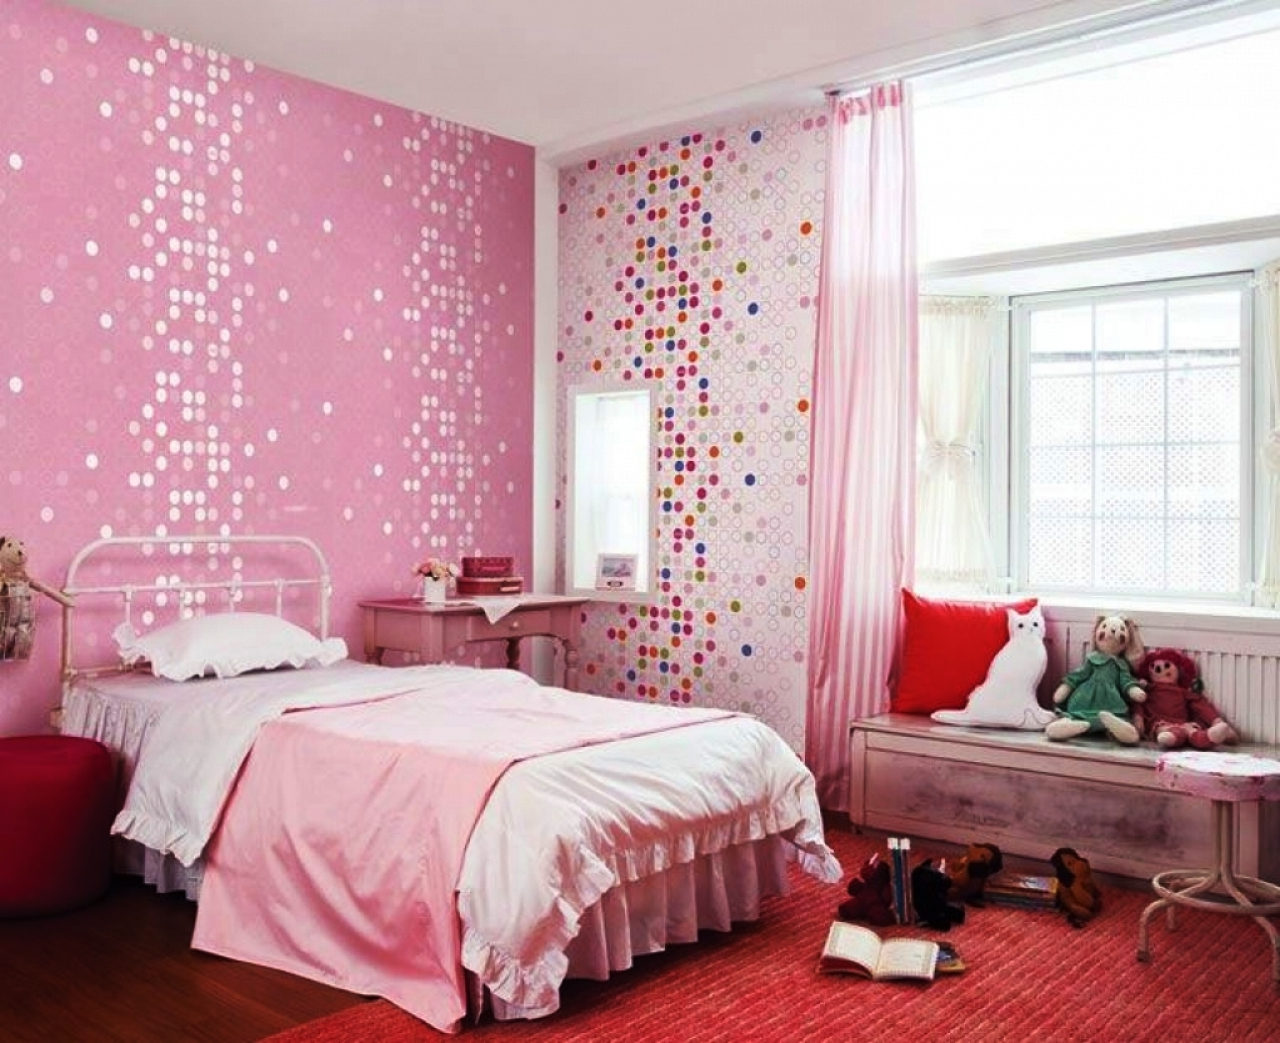 Etsy Girls Room Decor Related Items – Home Interior Inside Girls Room (View 16 of 24)